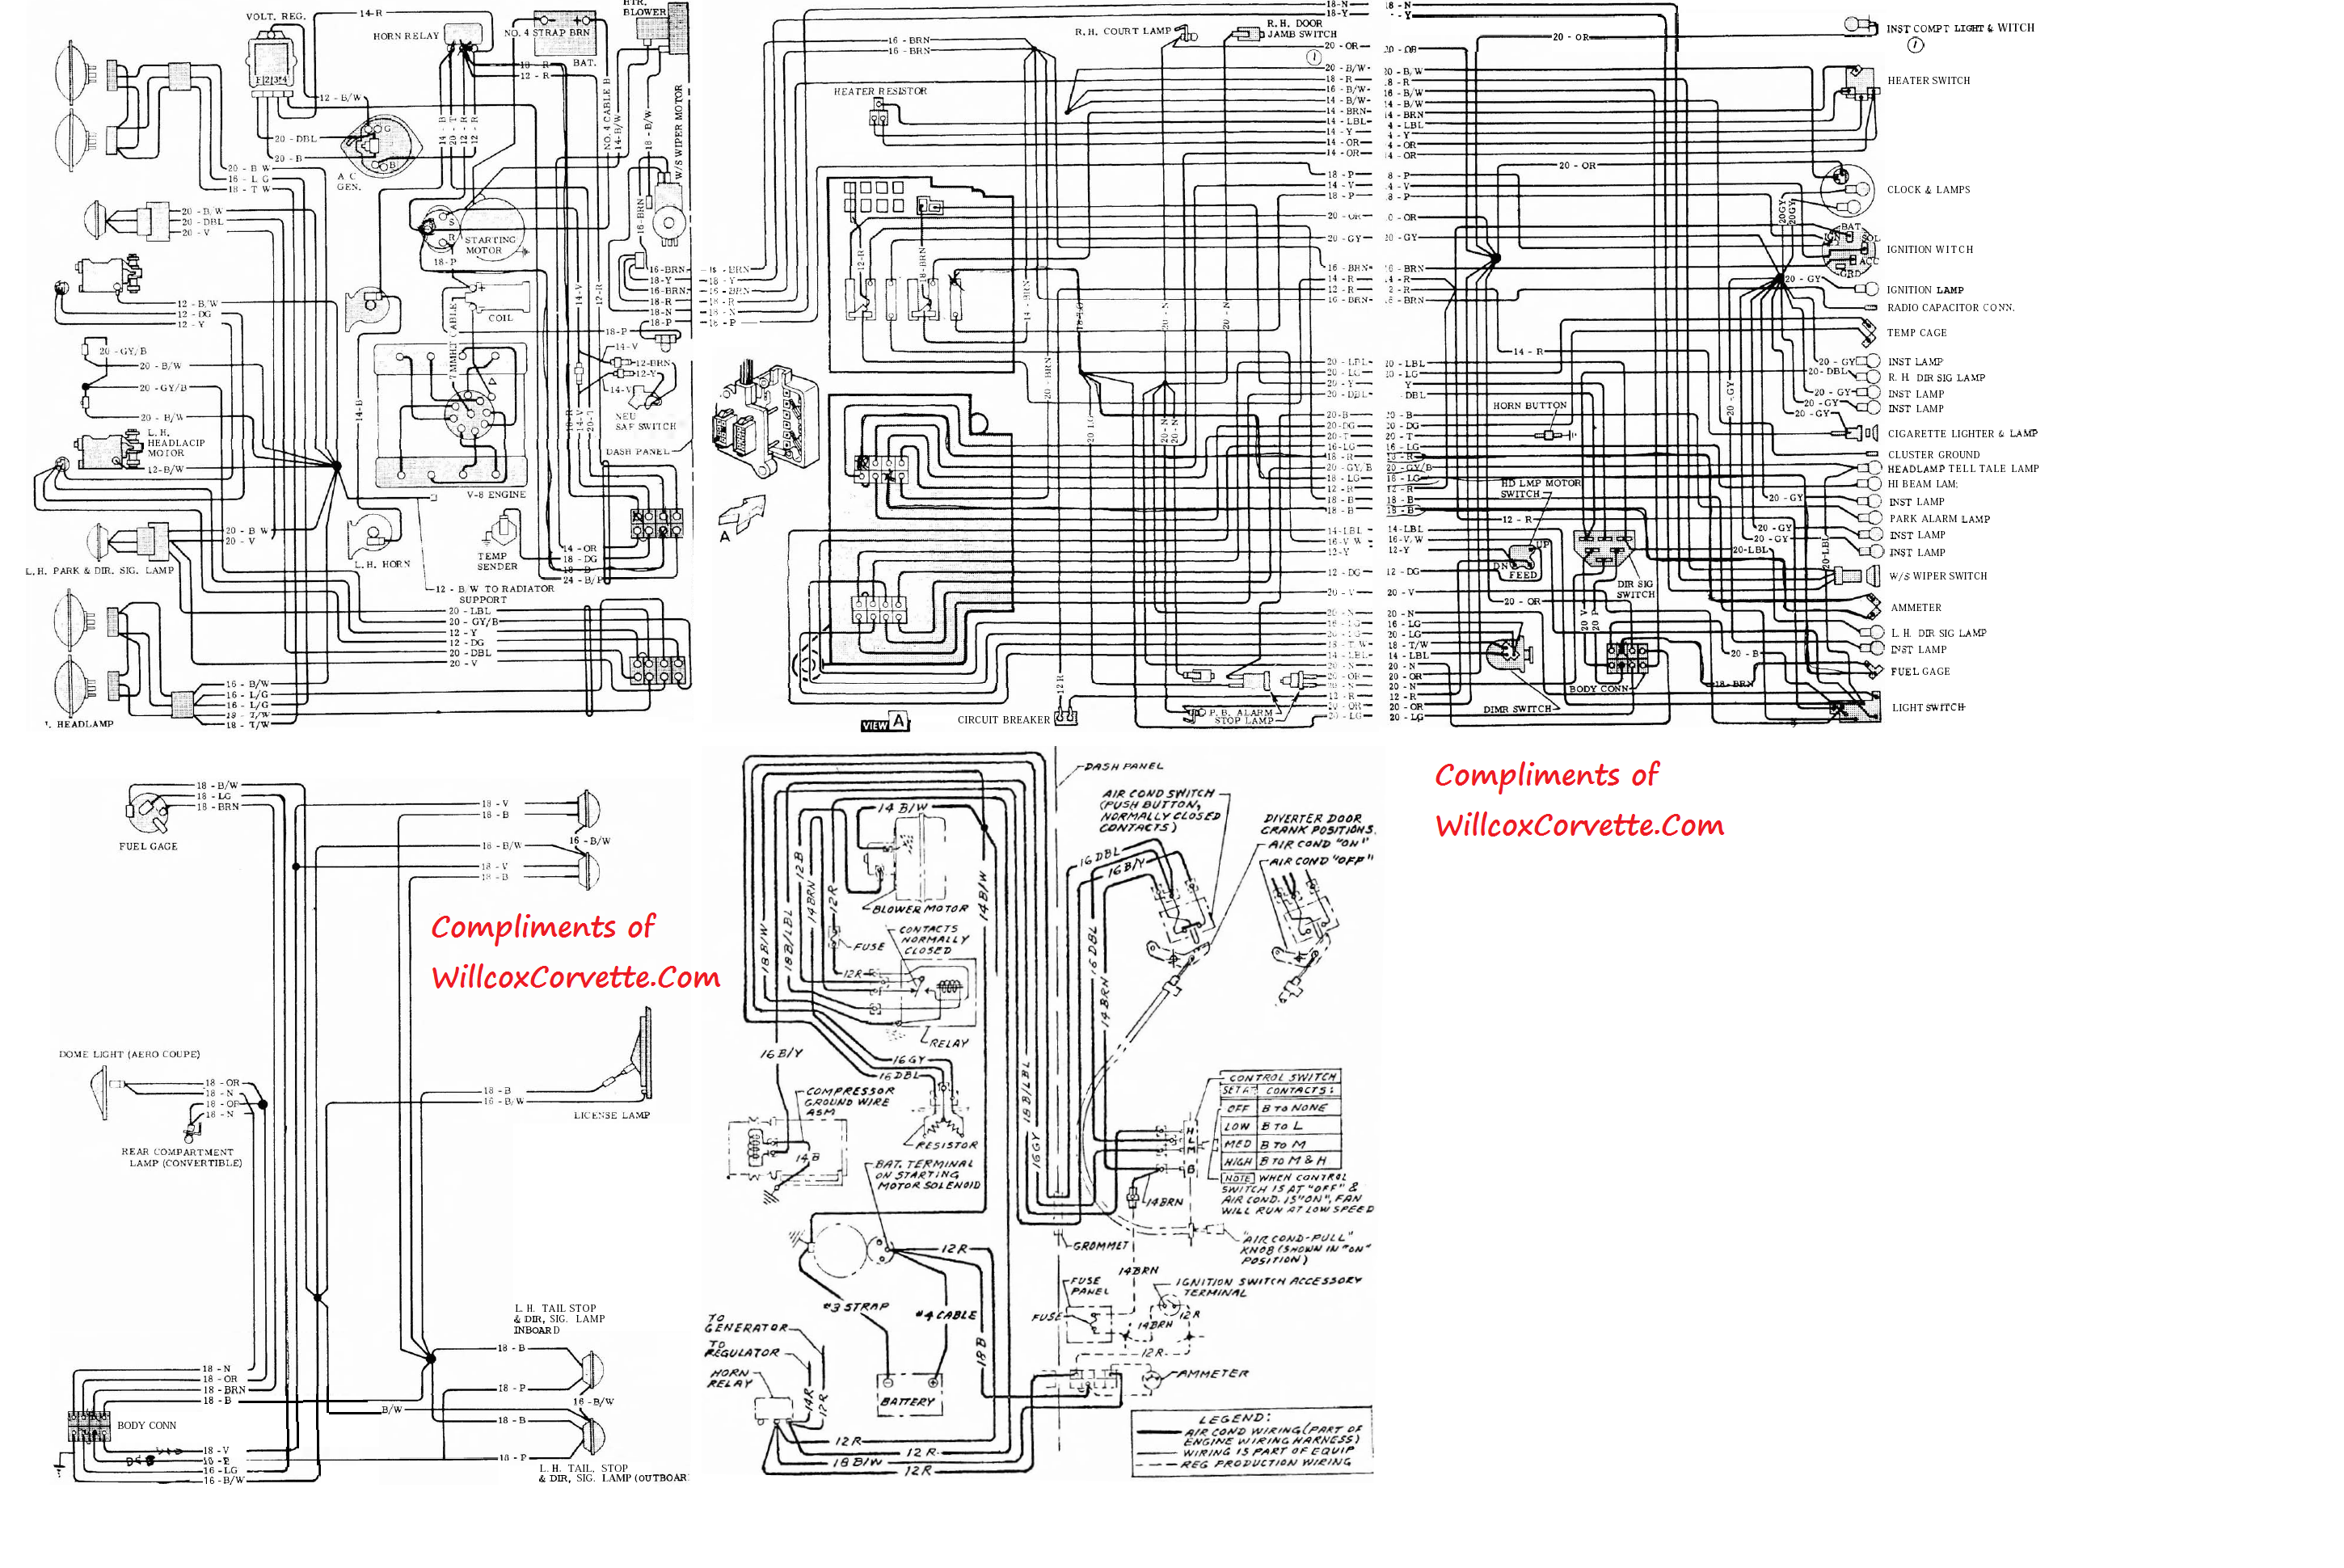 1979 Corvette Wiring Diagram Download on cox wiring diagrams